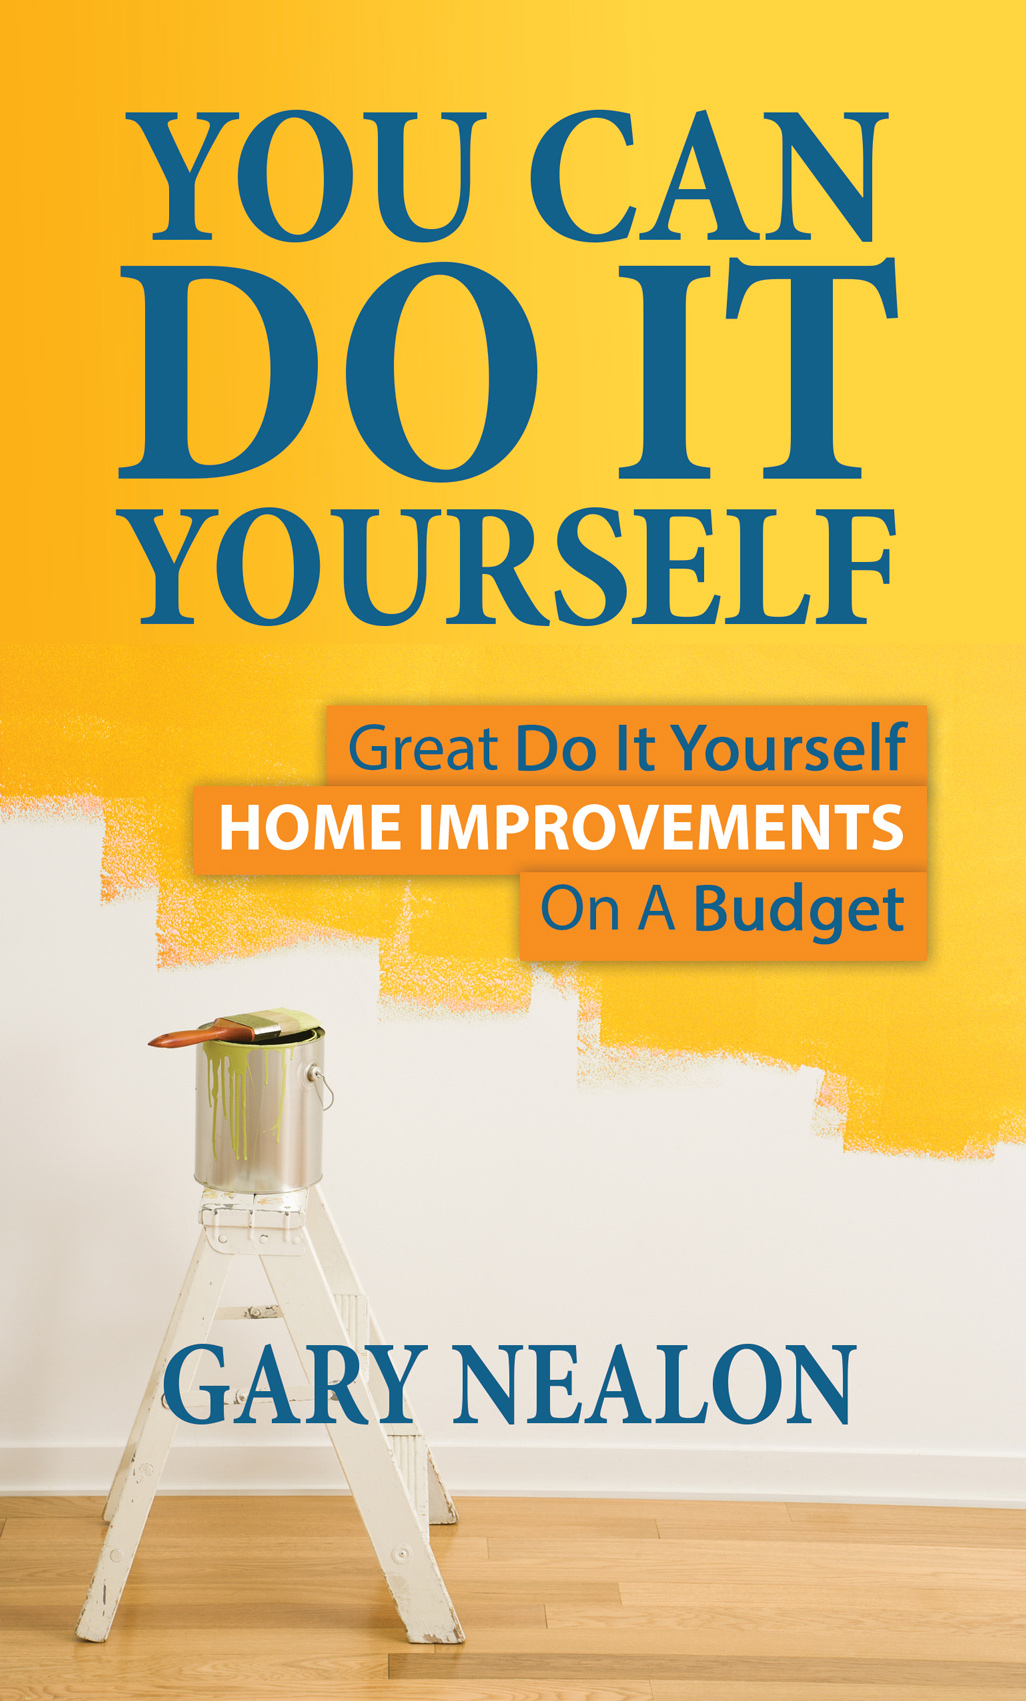 Do It Yourself: You Can Do It Yourself: New Home Improvement Book By Gary